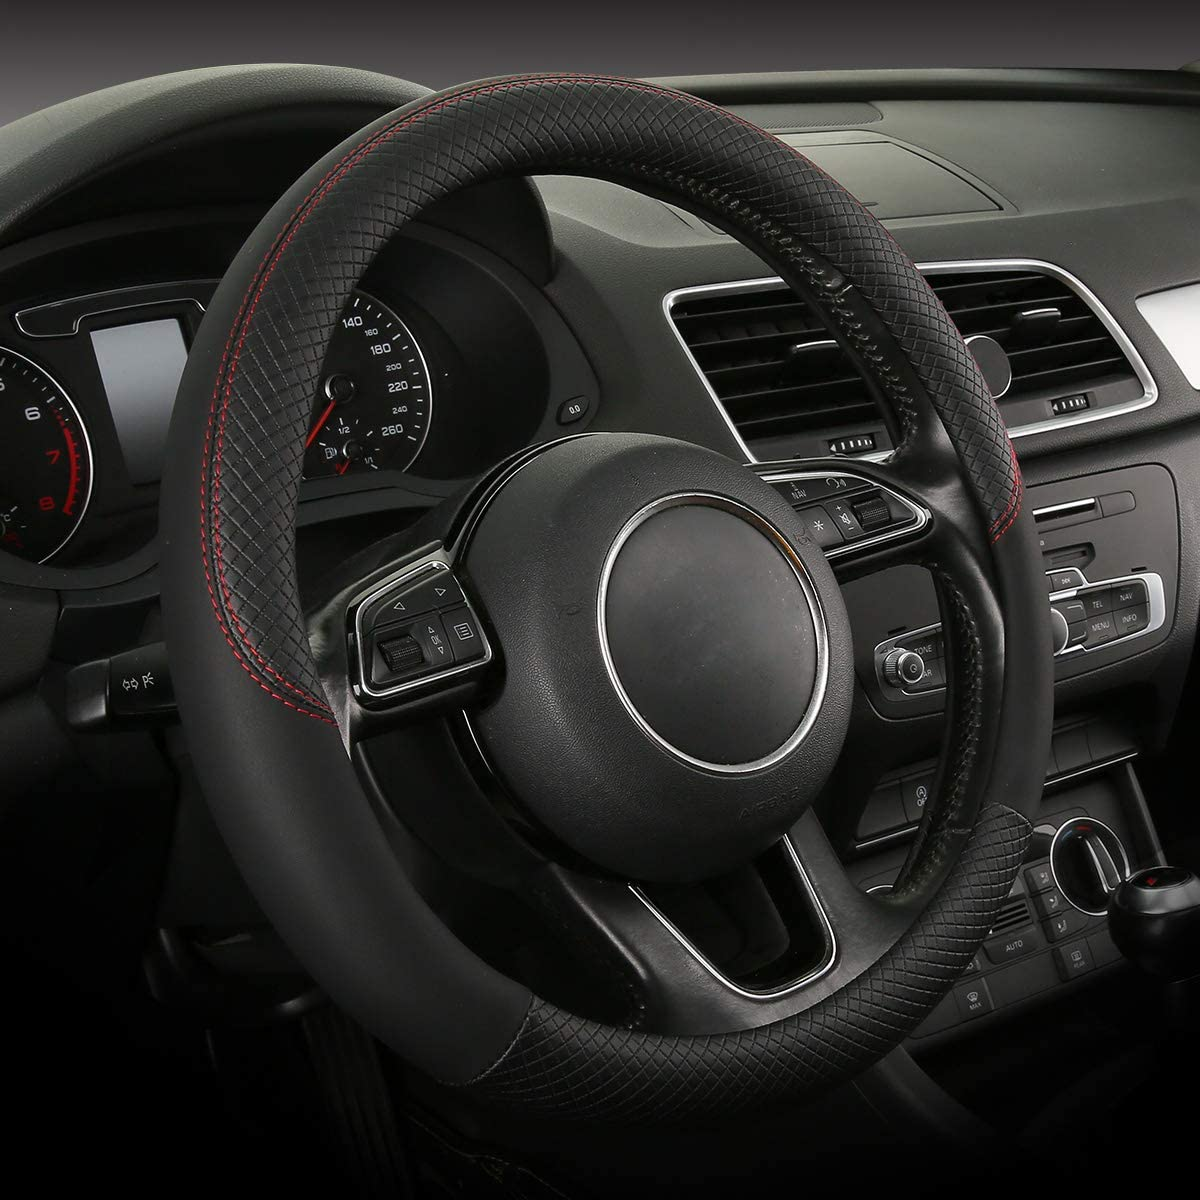 SOBONITO Leatheretted Steering Wheel Cover-Black Steering Cover for Men Universal Size (swc-04bla)